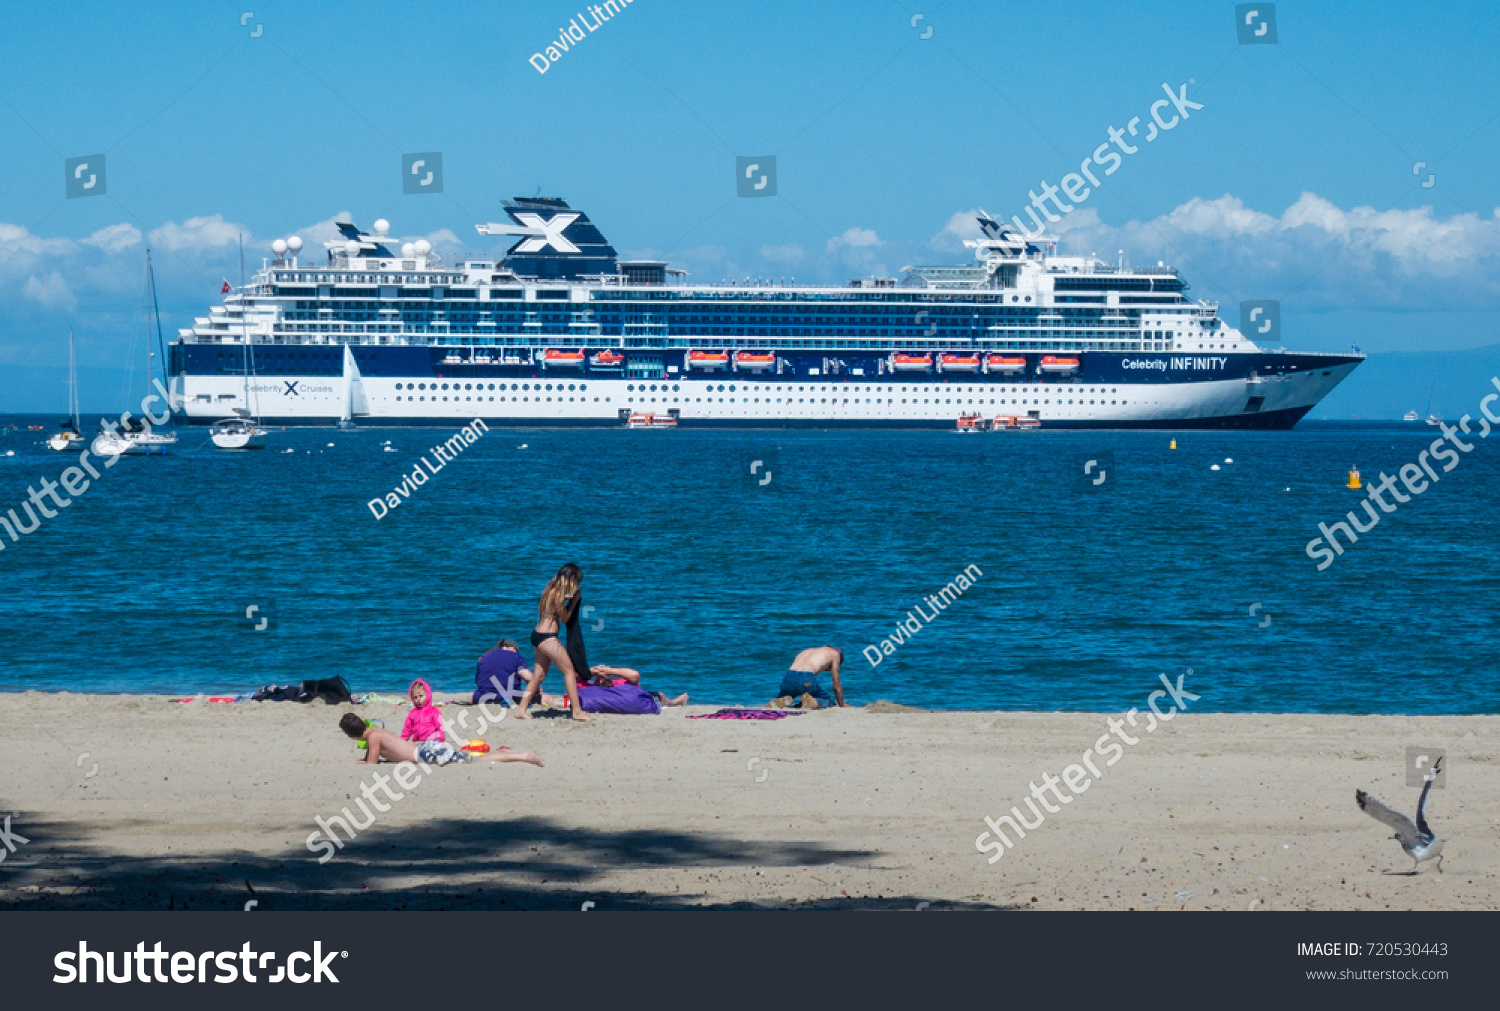 Monterey, California - September 22, 2017: The cruise ship Celebrity Infinity is anchored in the Monterey Bay as people enjoy a sunny day at Del Monte Beach.